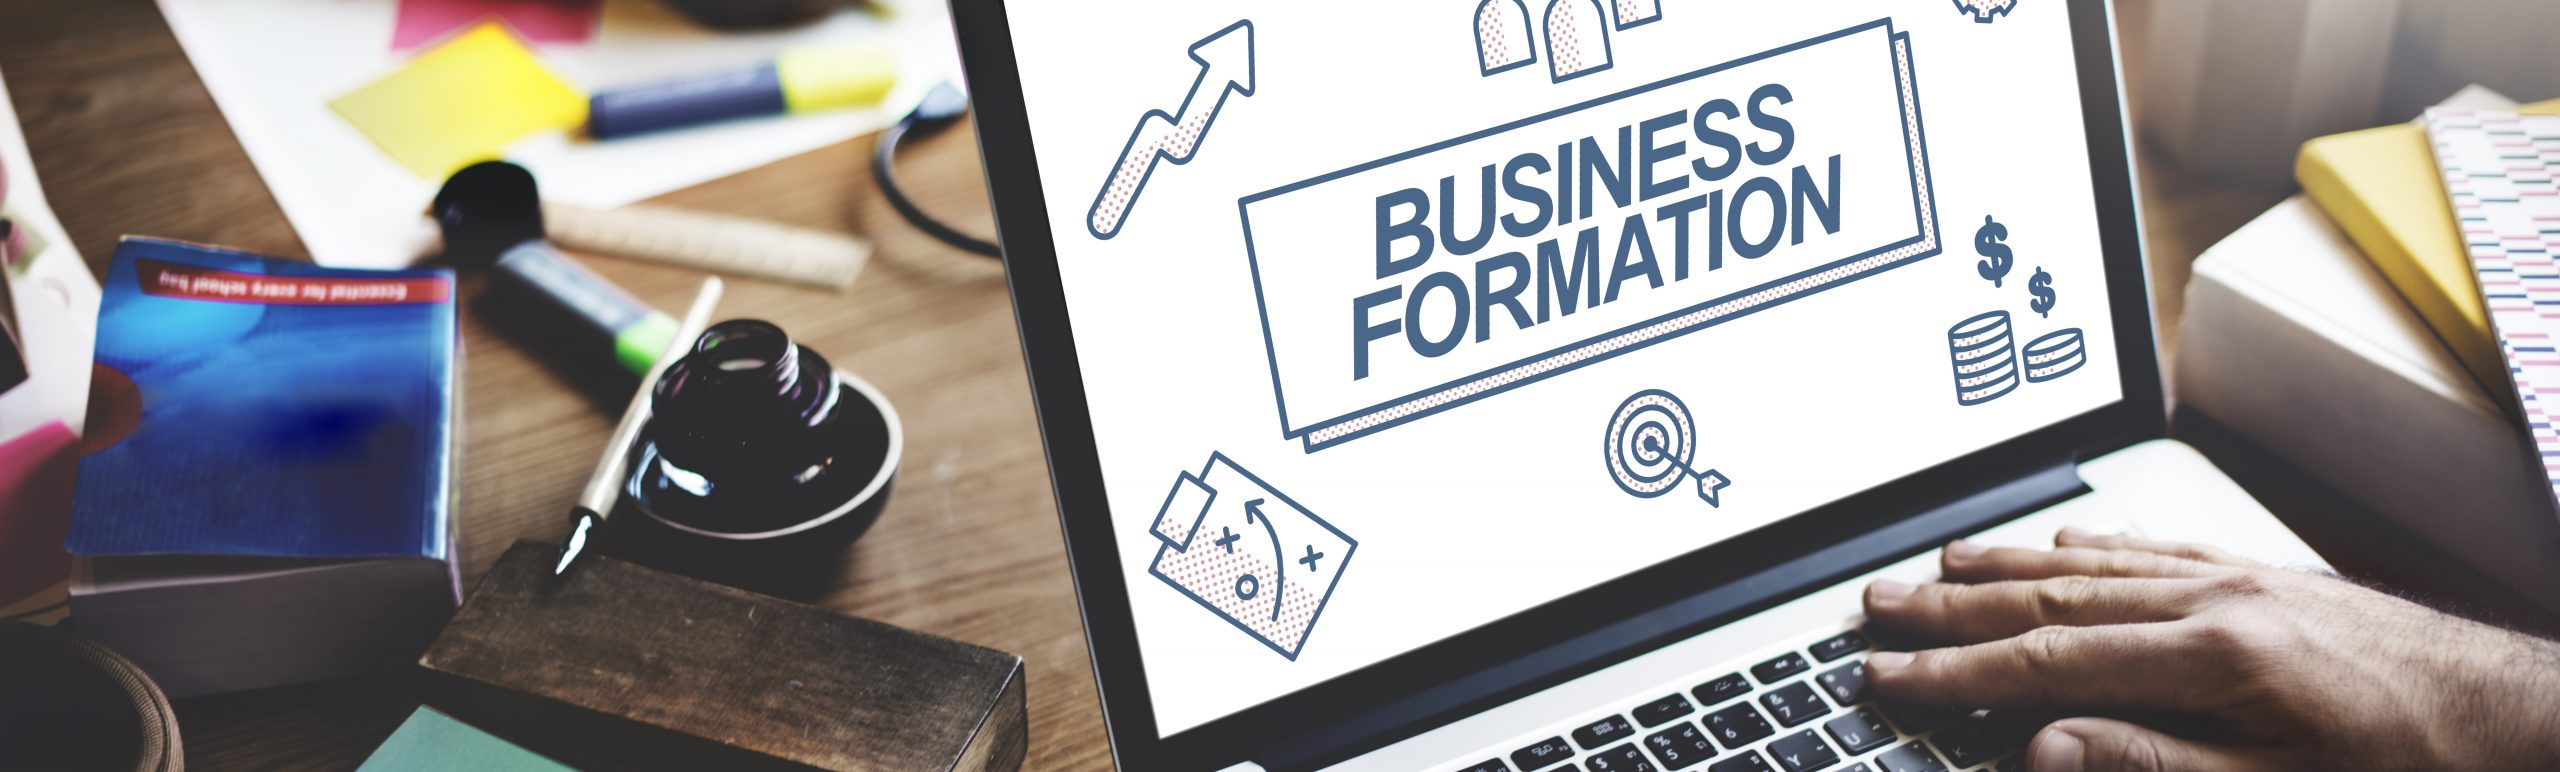 Company Formation in UAE